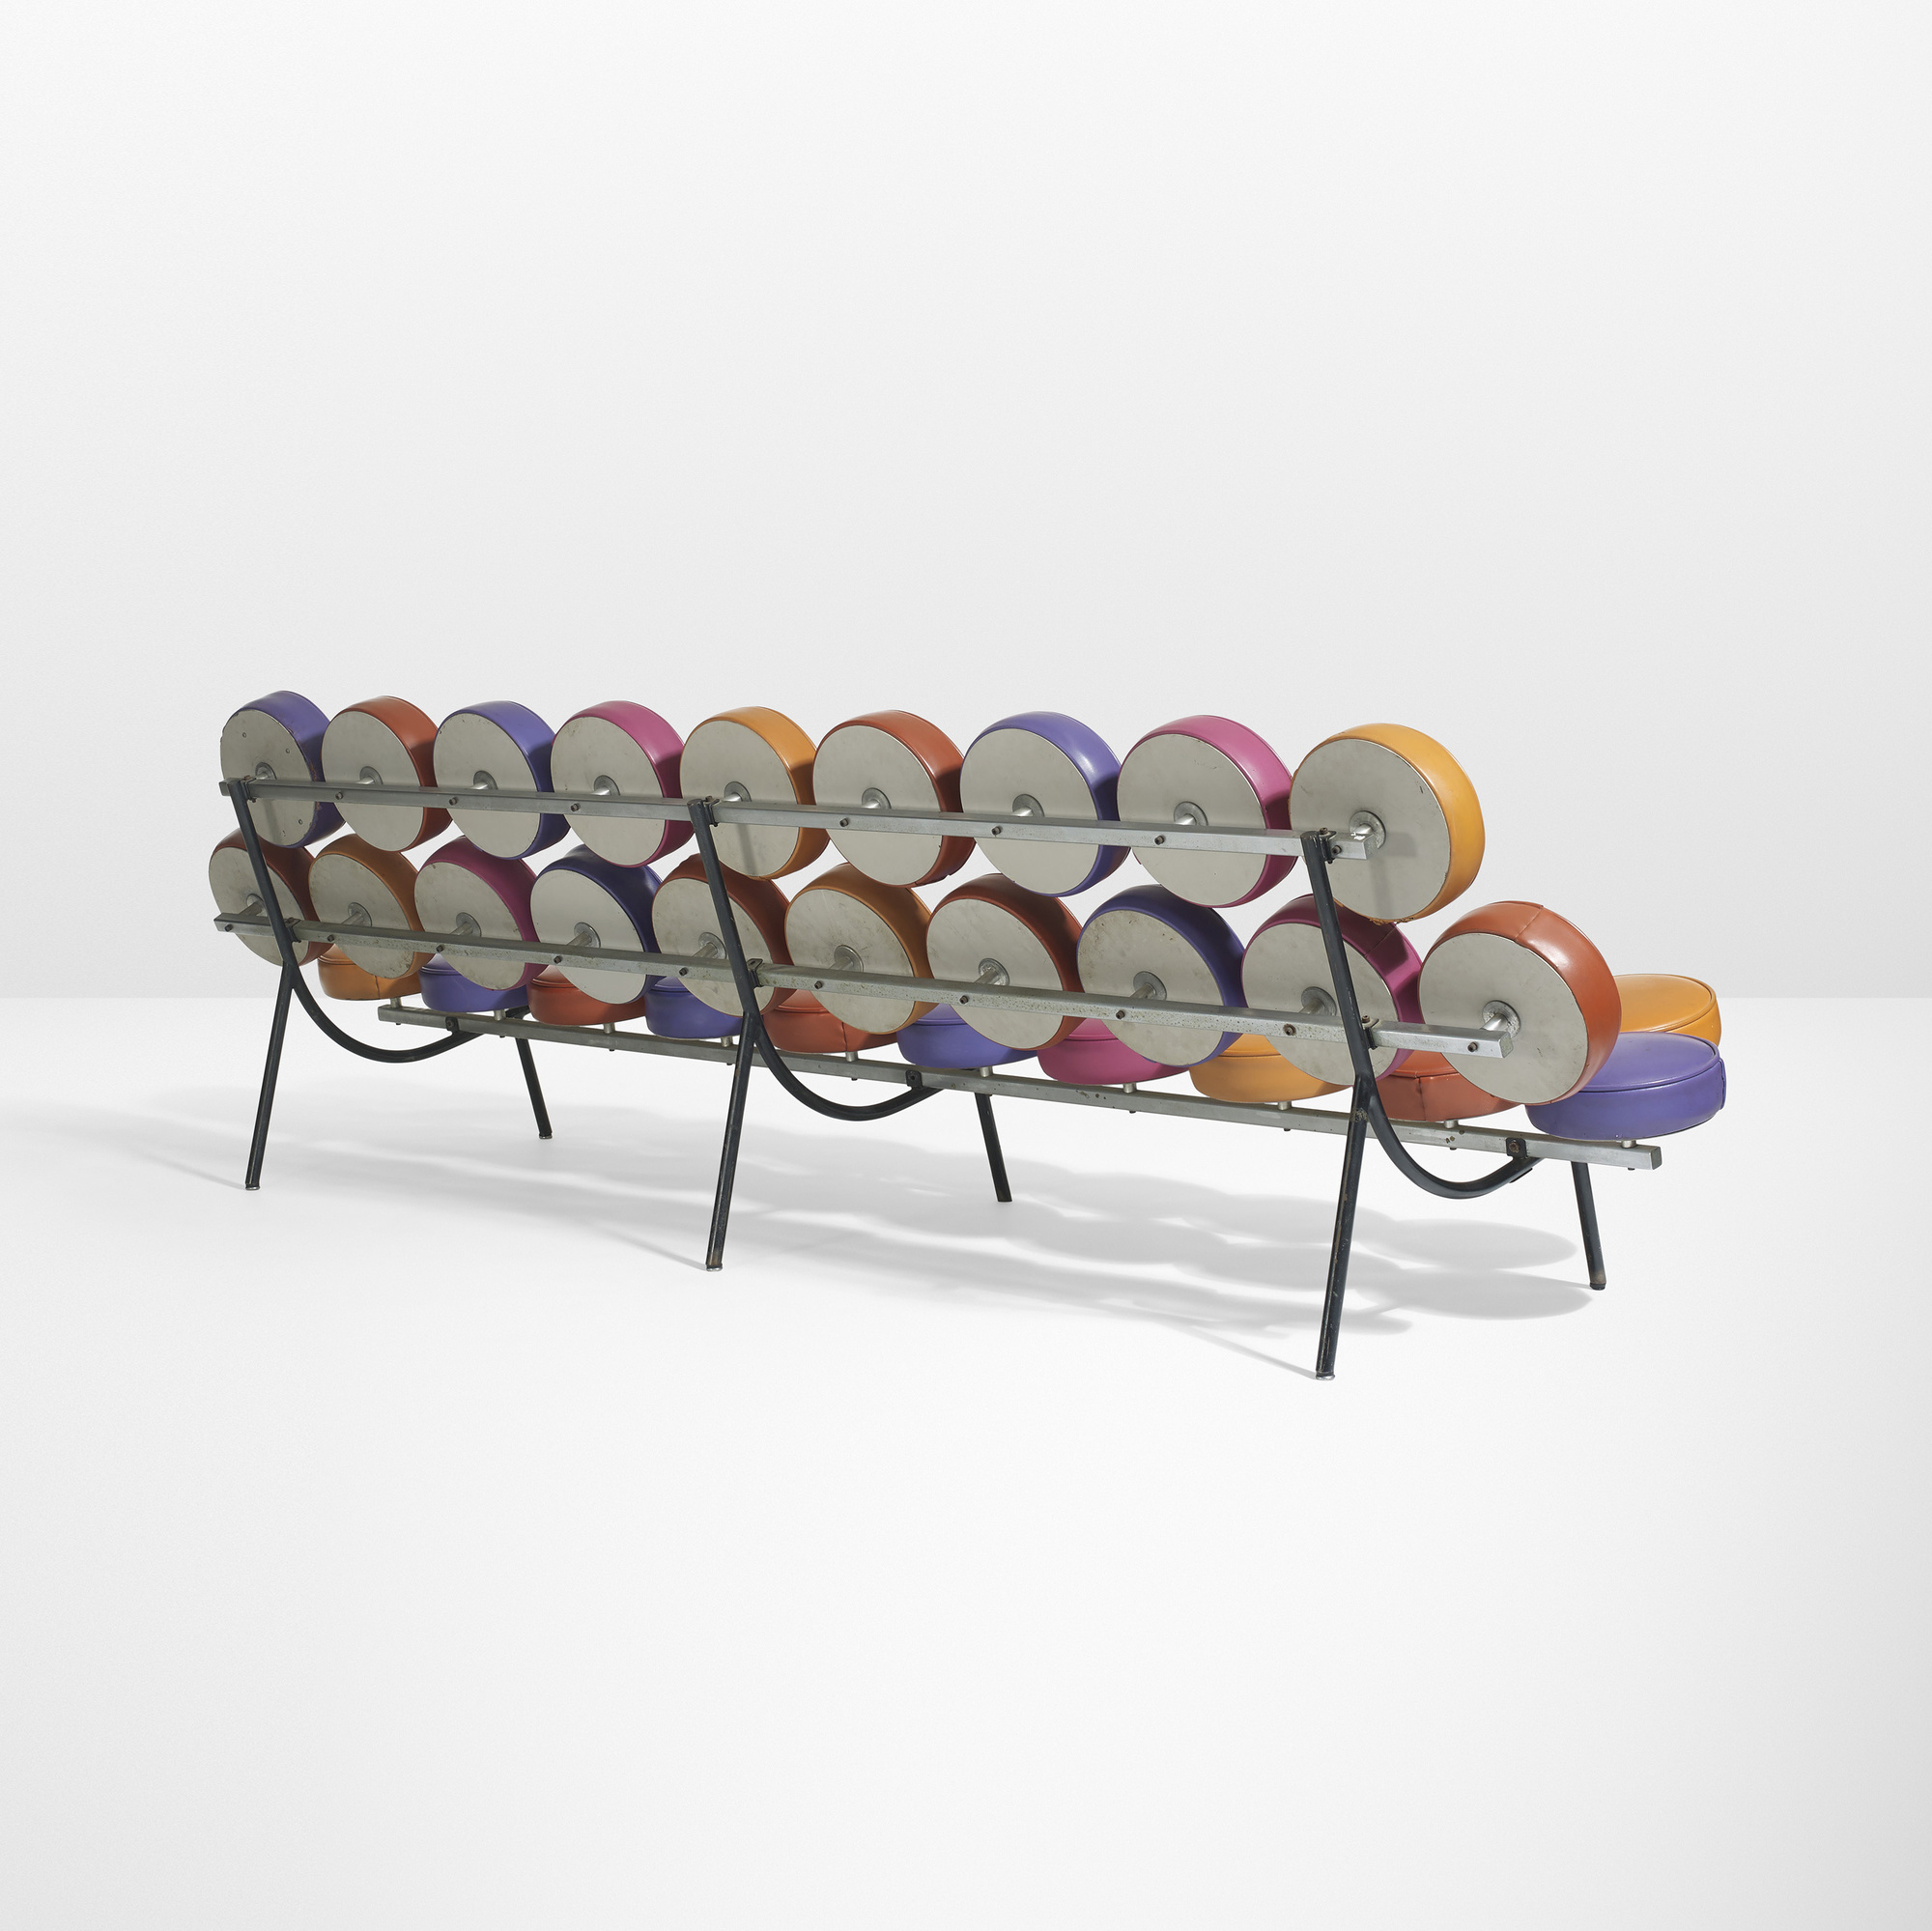 ... 10: George Nelson & Associates / Rare and important Marshmallow Sofa (2 of 3